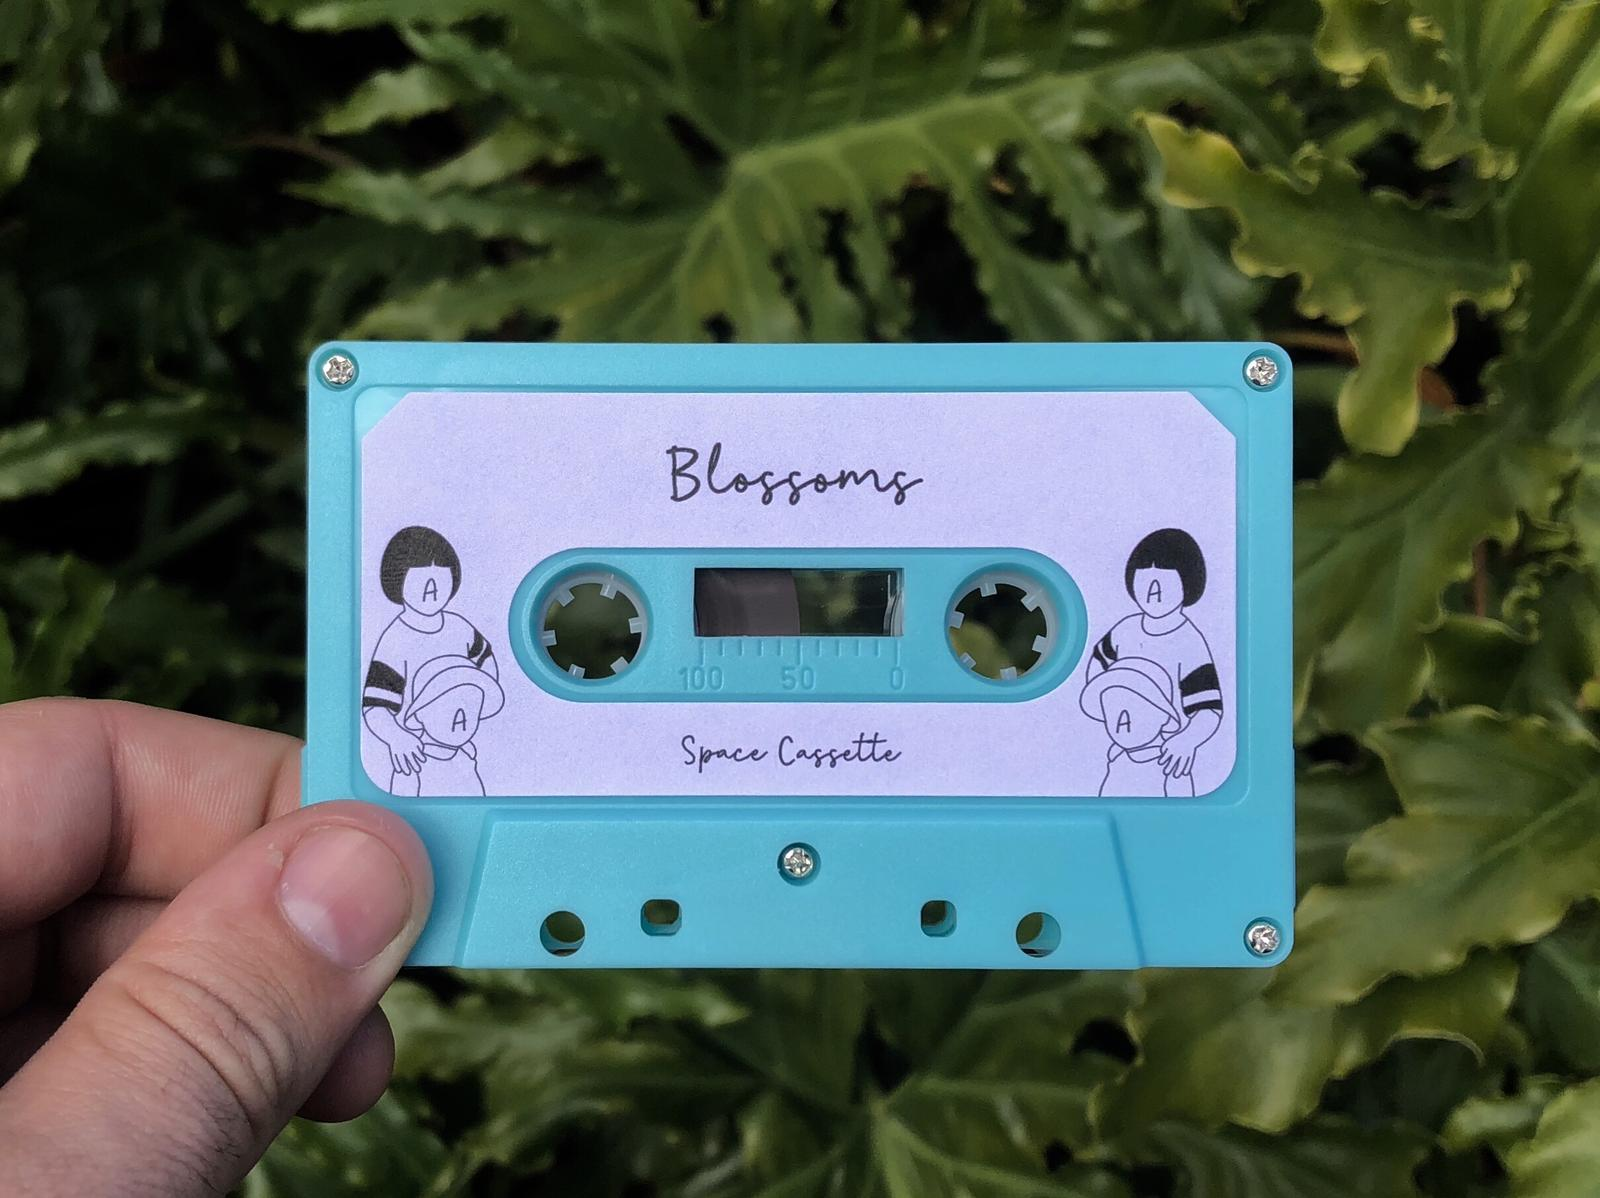 Blossoms - Perth Local Mixtape (compiled and produced by Space Cassette)